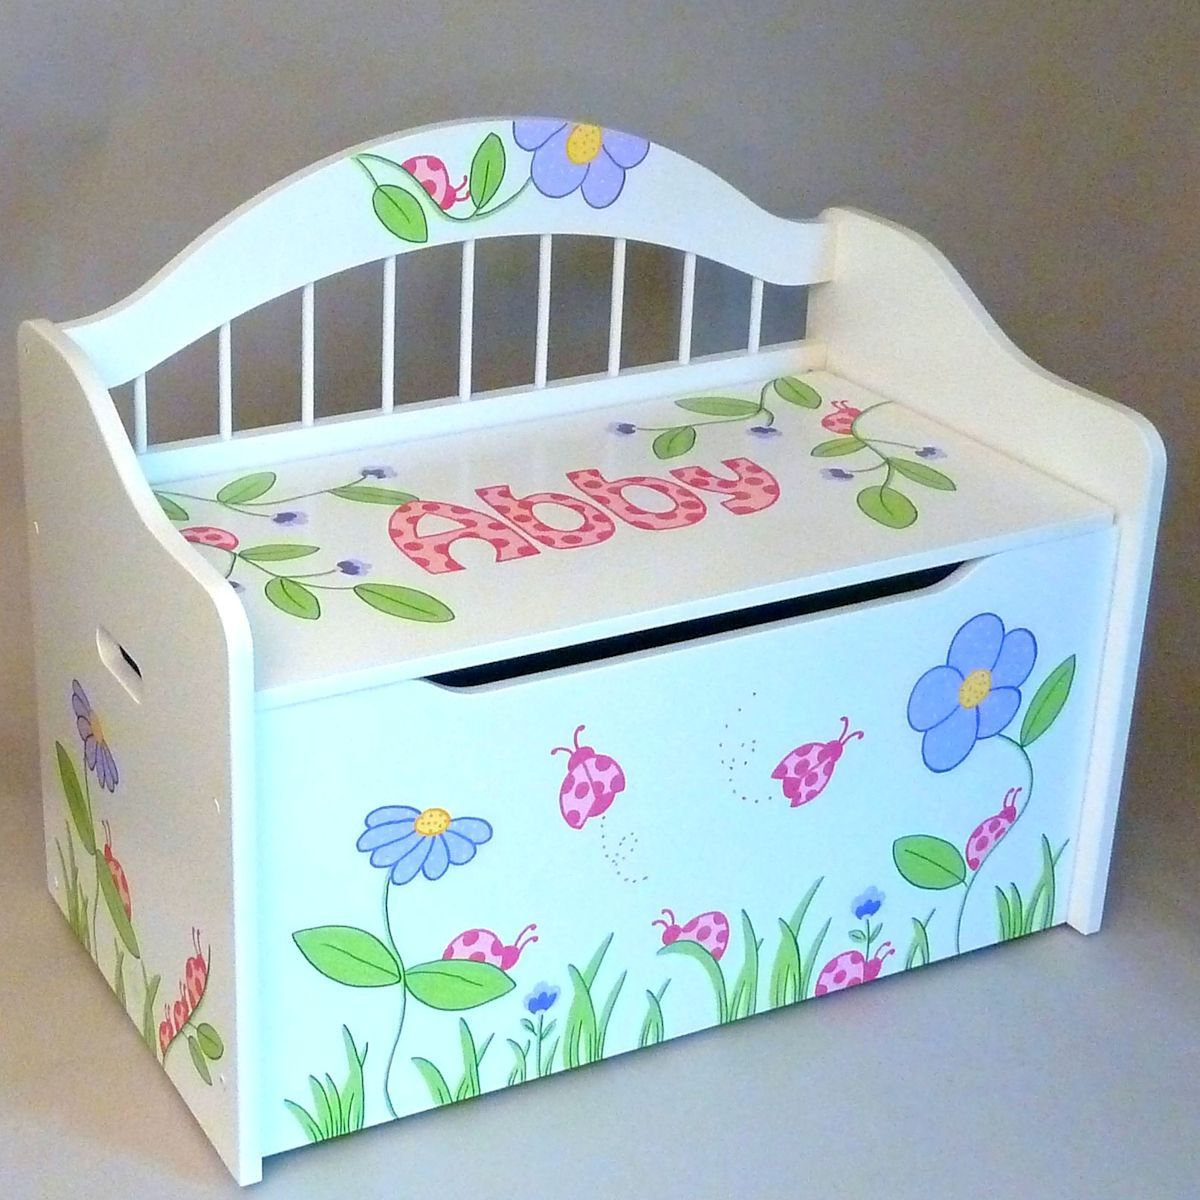 Personalized deacons bench toy box white toy boxes toy box personalized deacons bench toy negle